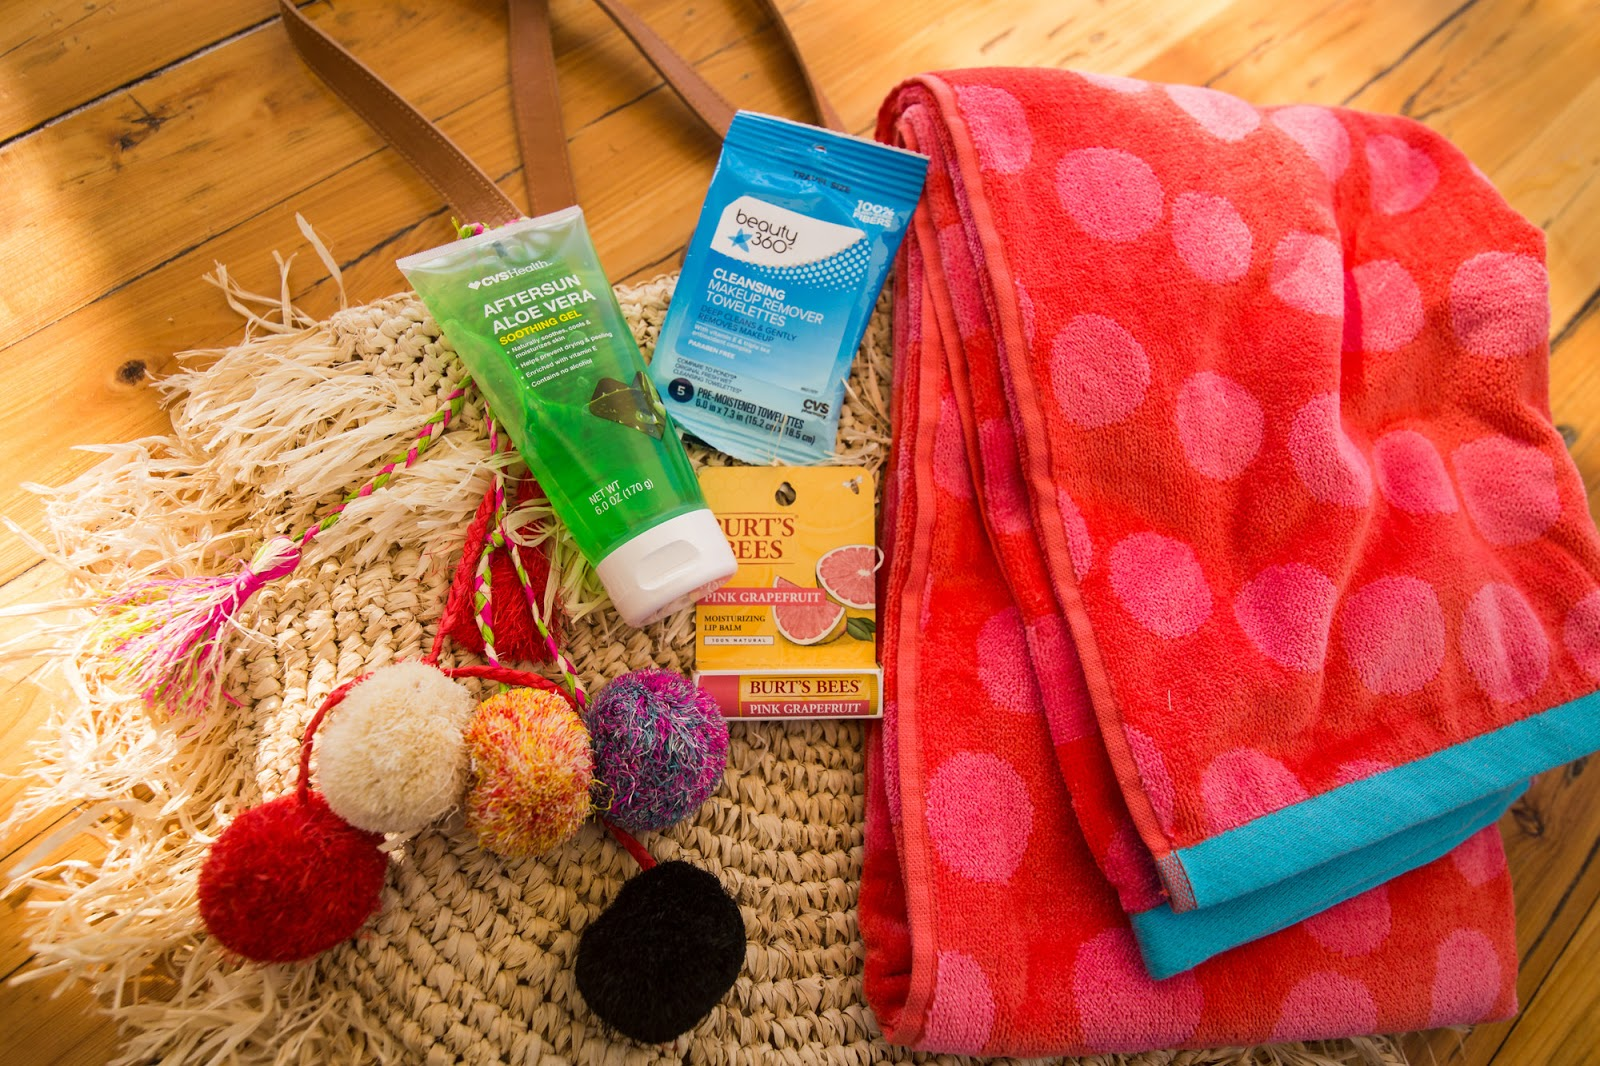 Long Live Skin - My Beach Products Essentials by popular blogger Laura of Walking In Memphis in High Heels